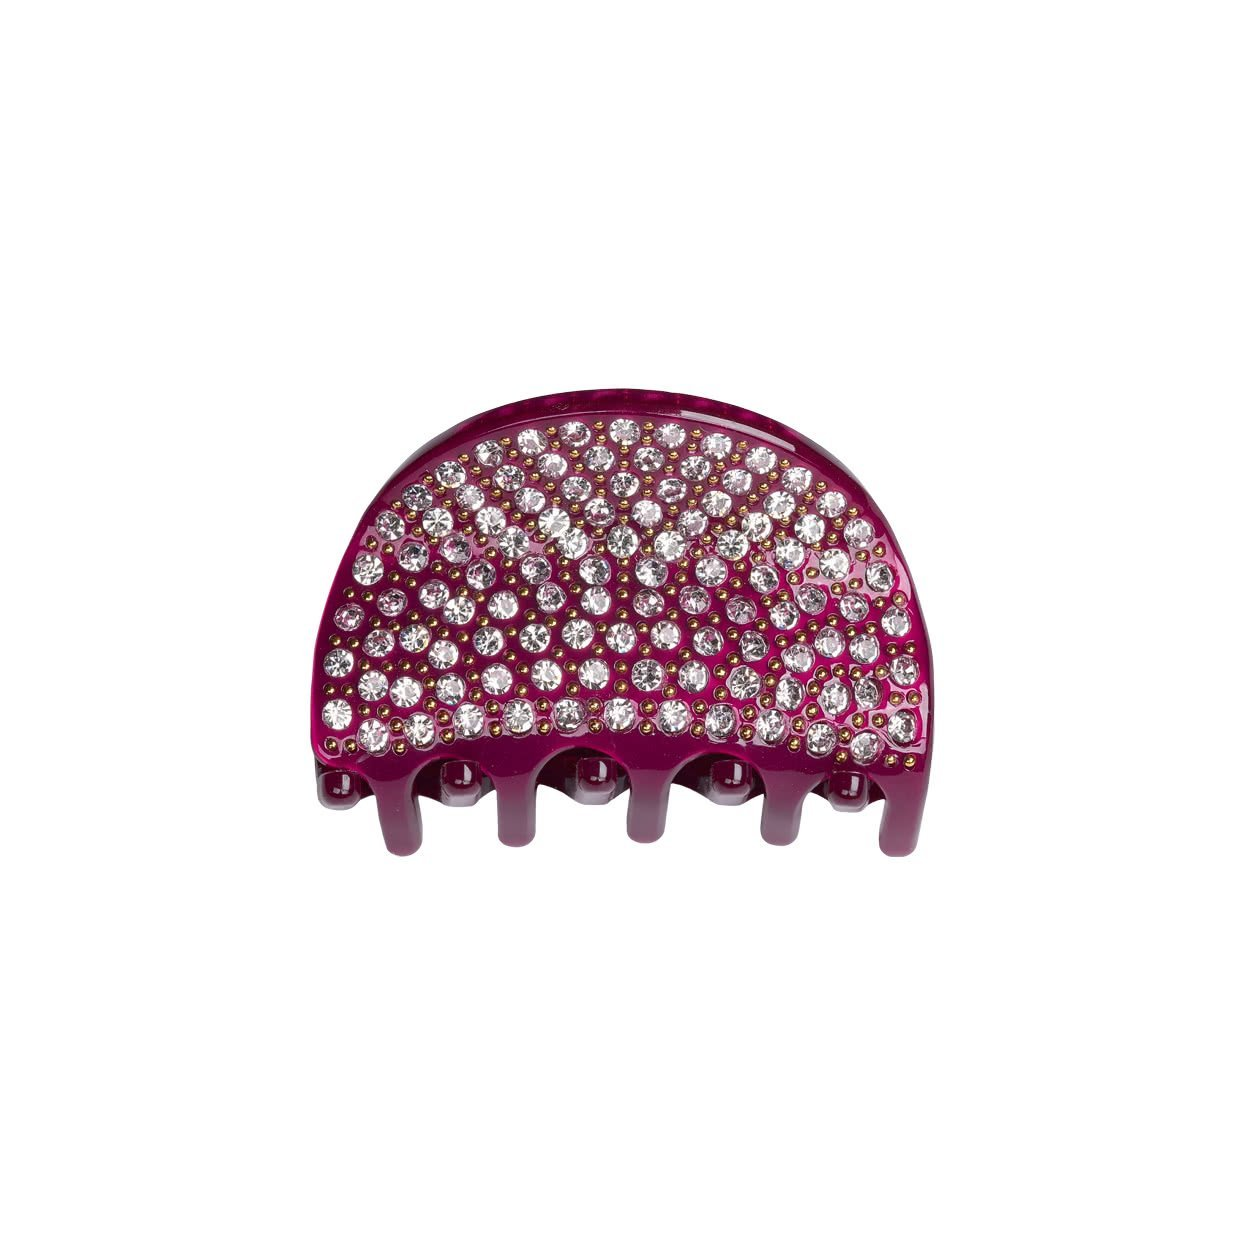 Image of Small Hair Claw with crystals - burgundy